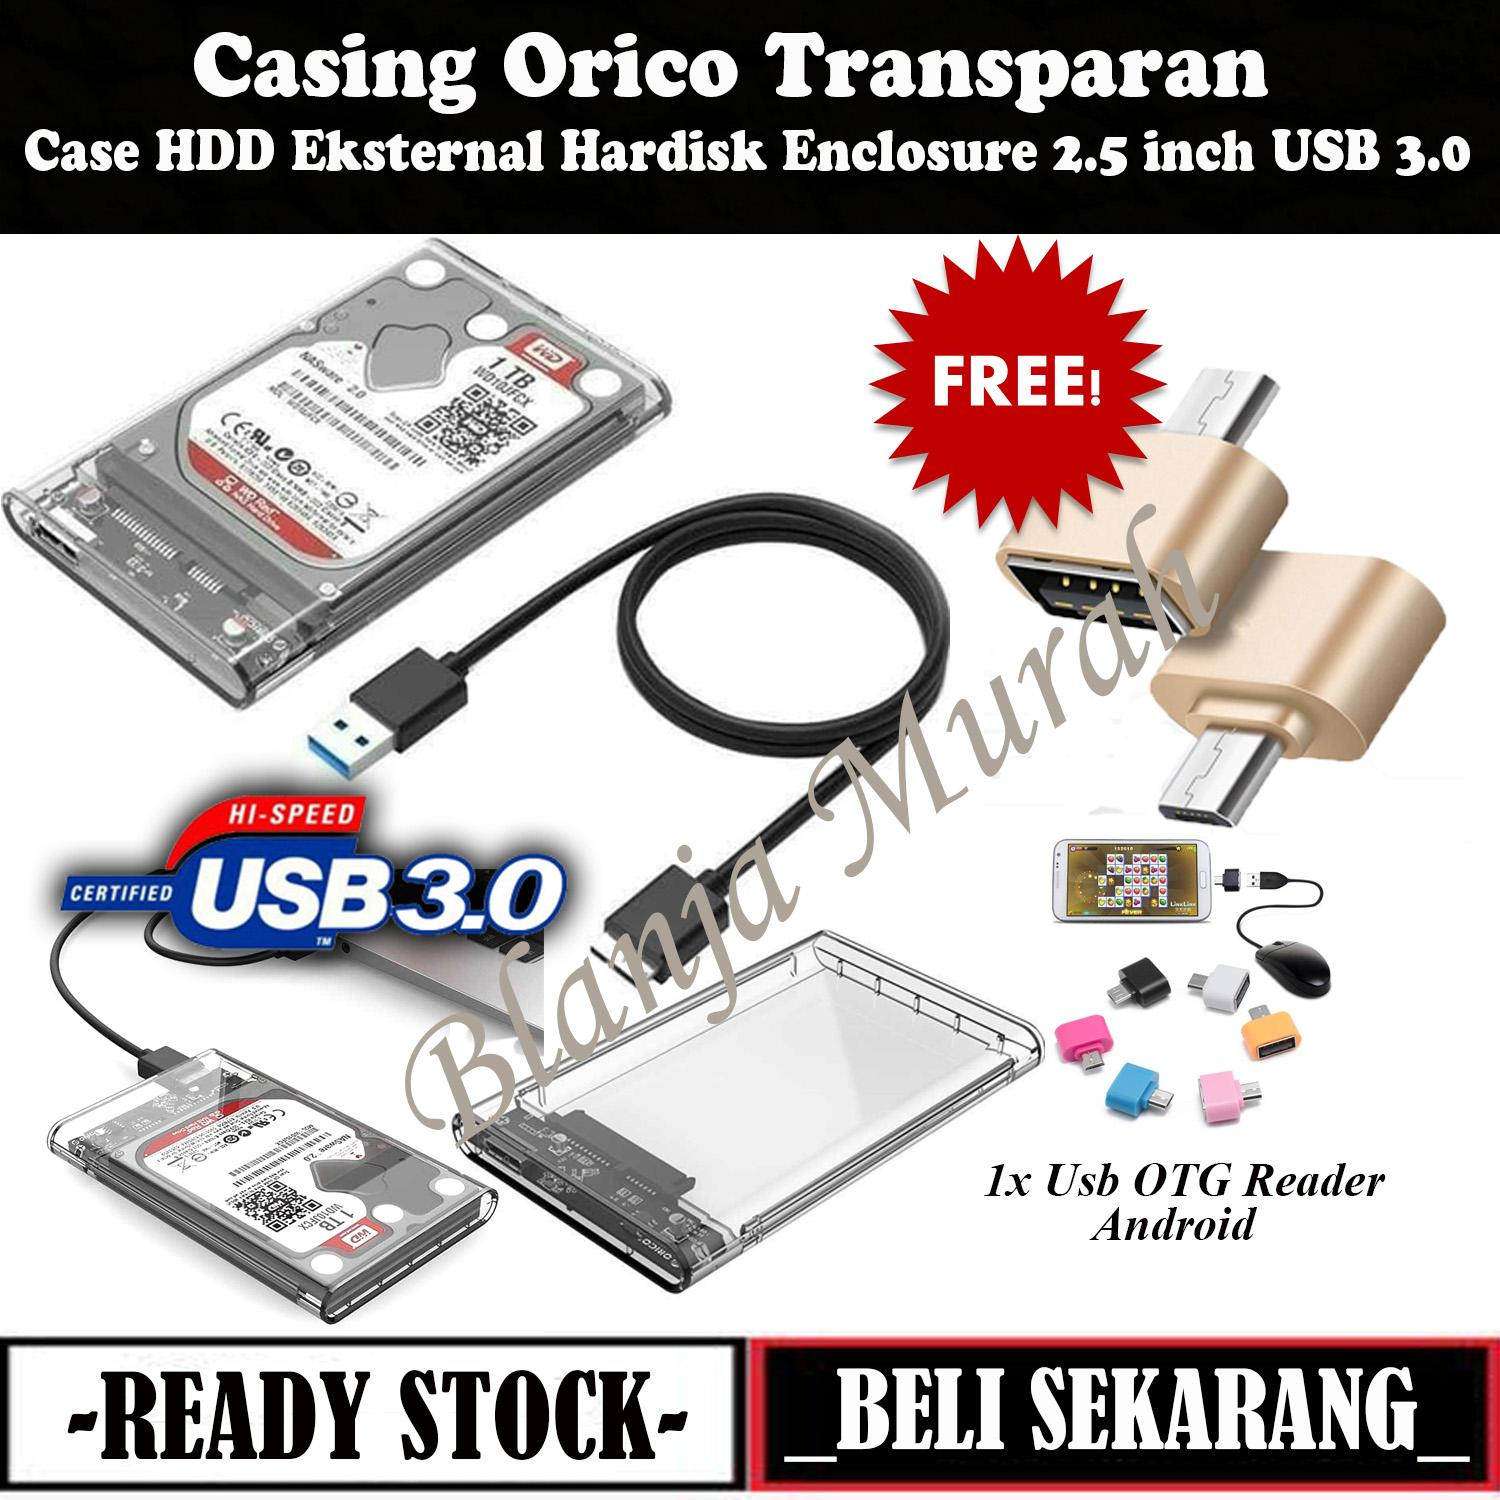 https://www.lazada.co.id/products/case-hdd-eksternal-casing-orico-transparan-hardisk-enclosure-25-inch-usb-30-free-hot-bonus-i413214076-s460866442.html